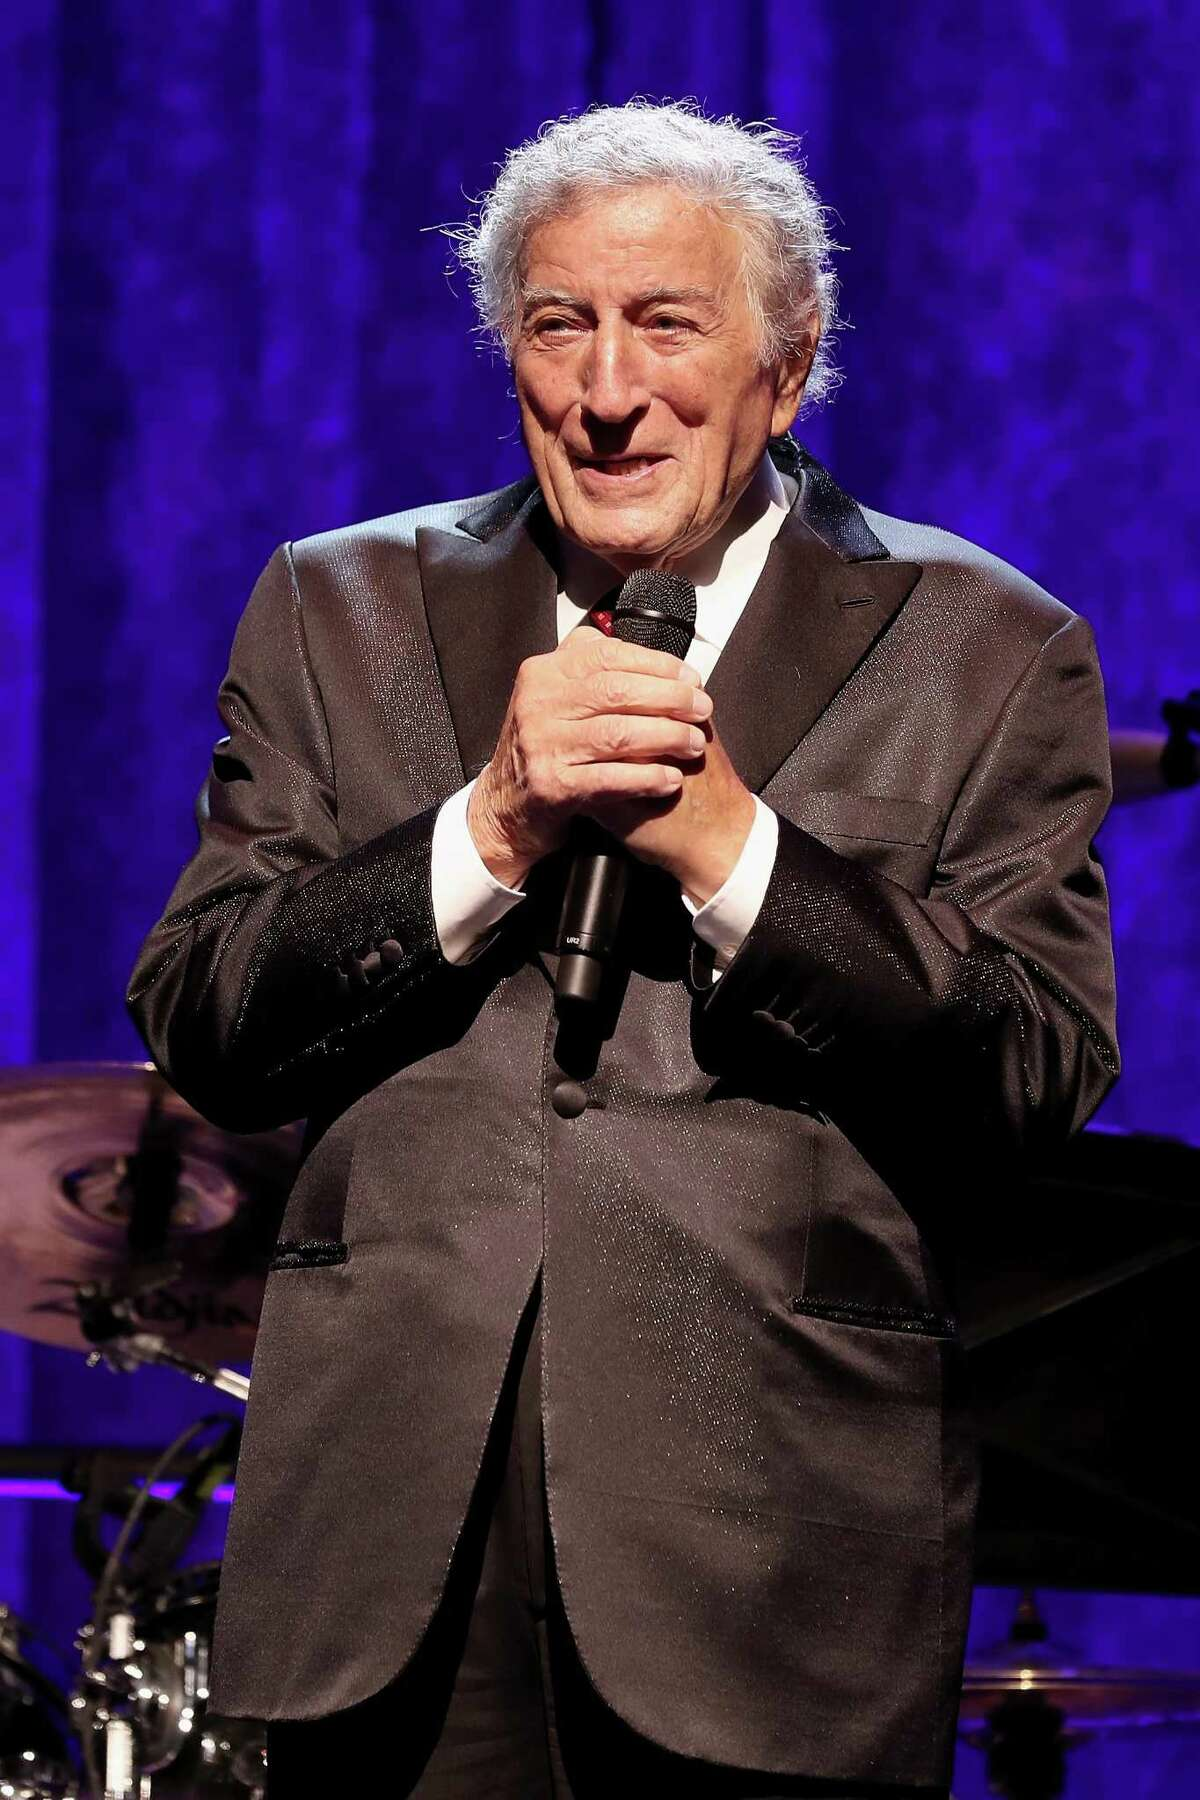 Tony Bennett speaks onstage at the American Theatre Wing Centennial Gala at Cipriani 42nd Street on September 18. Bennett will headline the Multiple Myeloma Research Foundation's annual fall gala in Greenwich on Oct. 28.